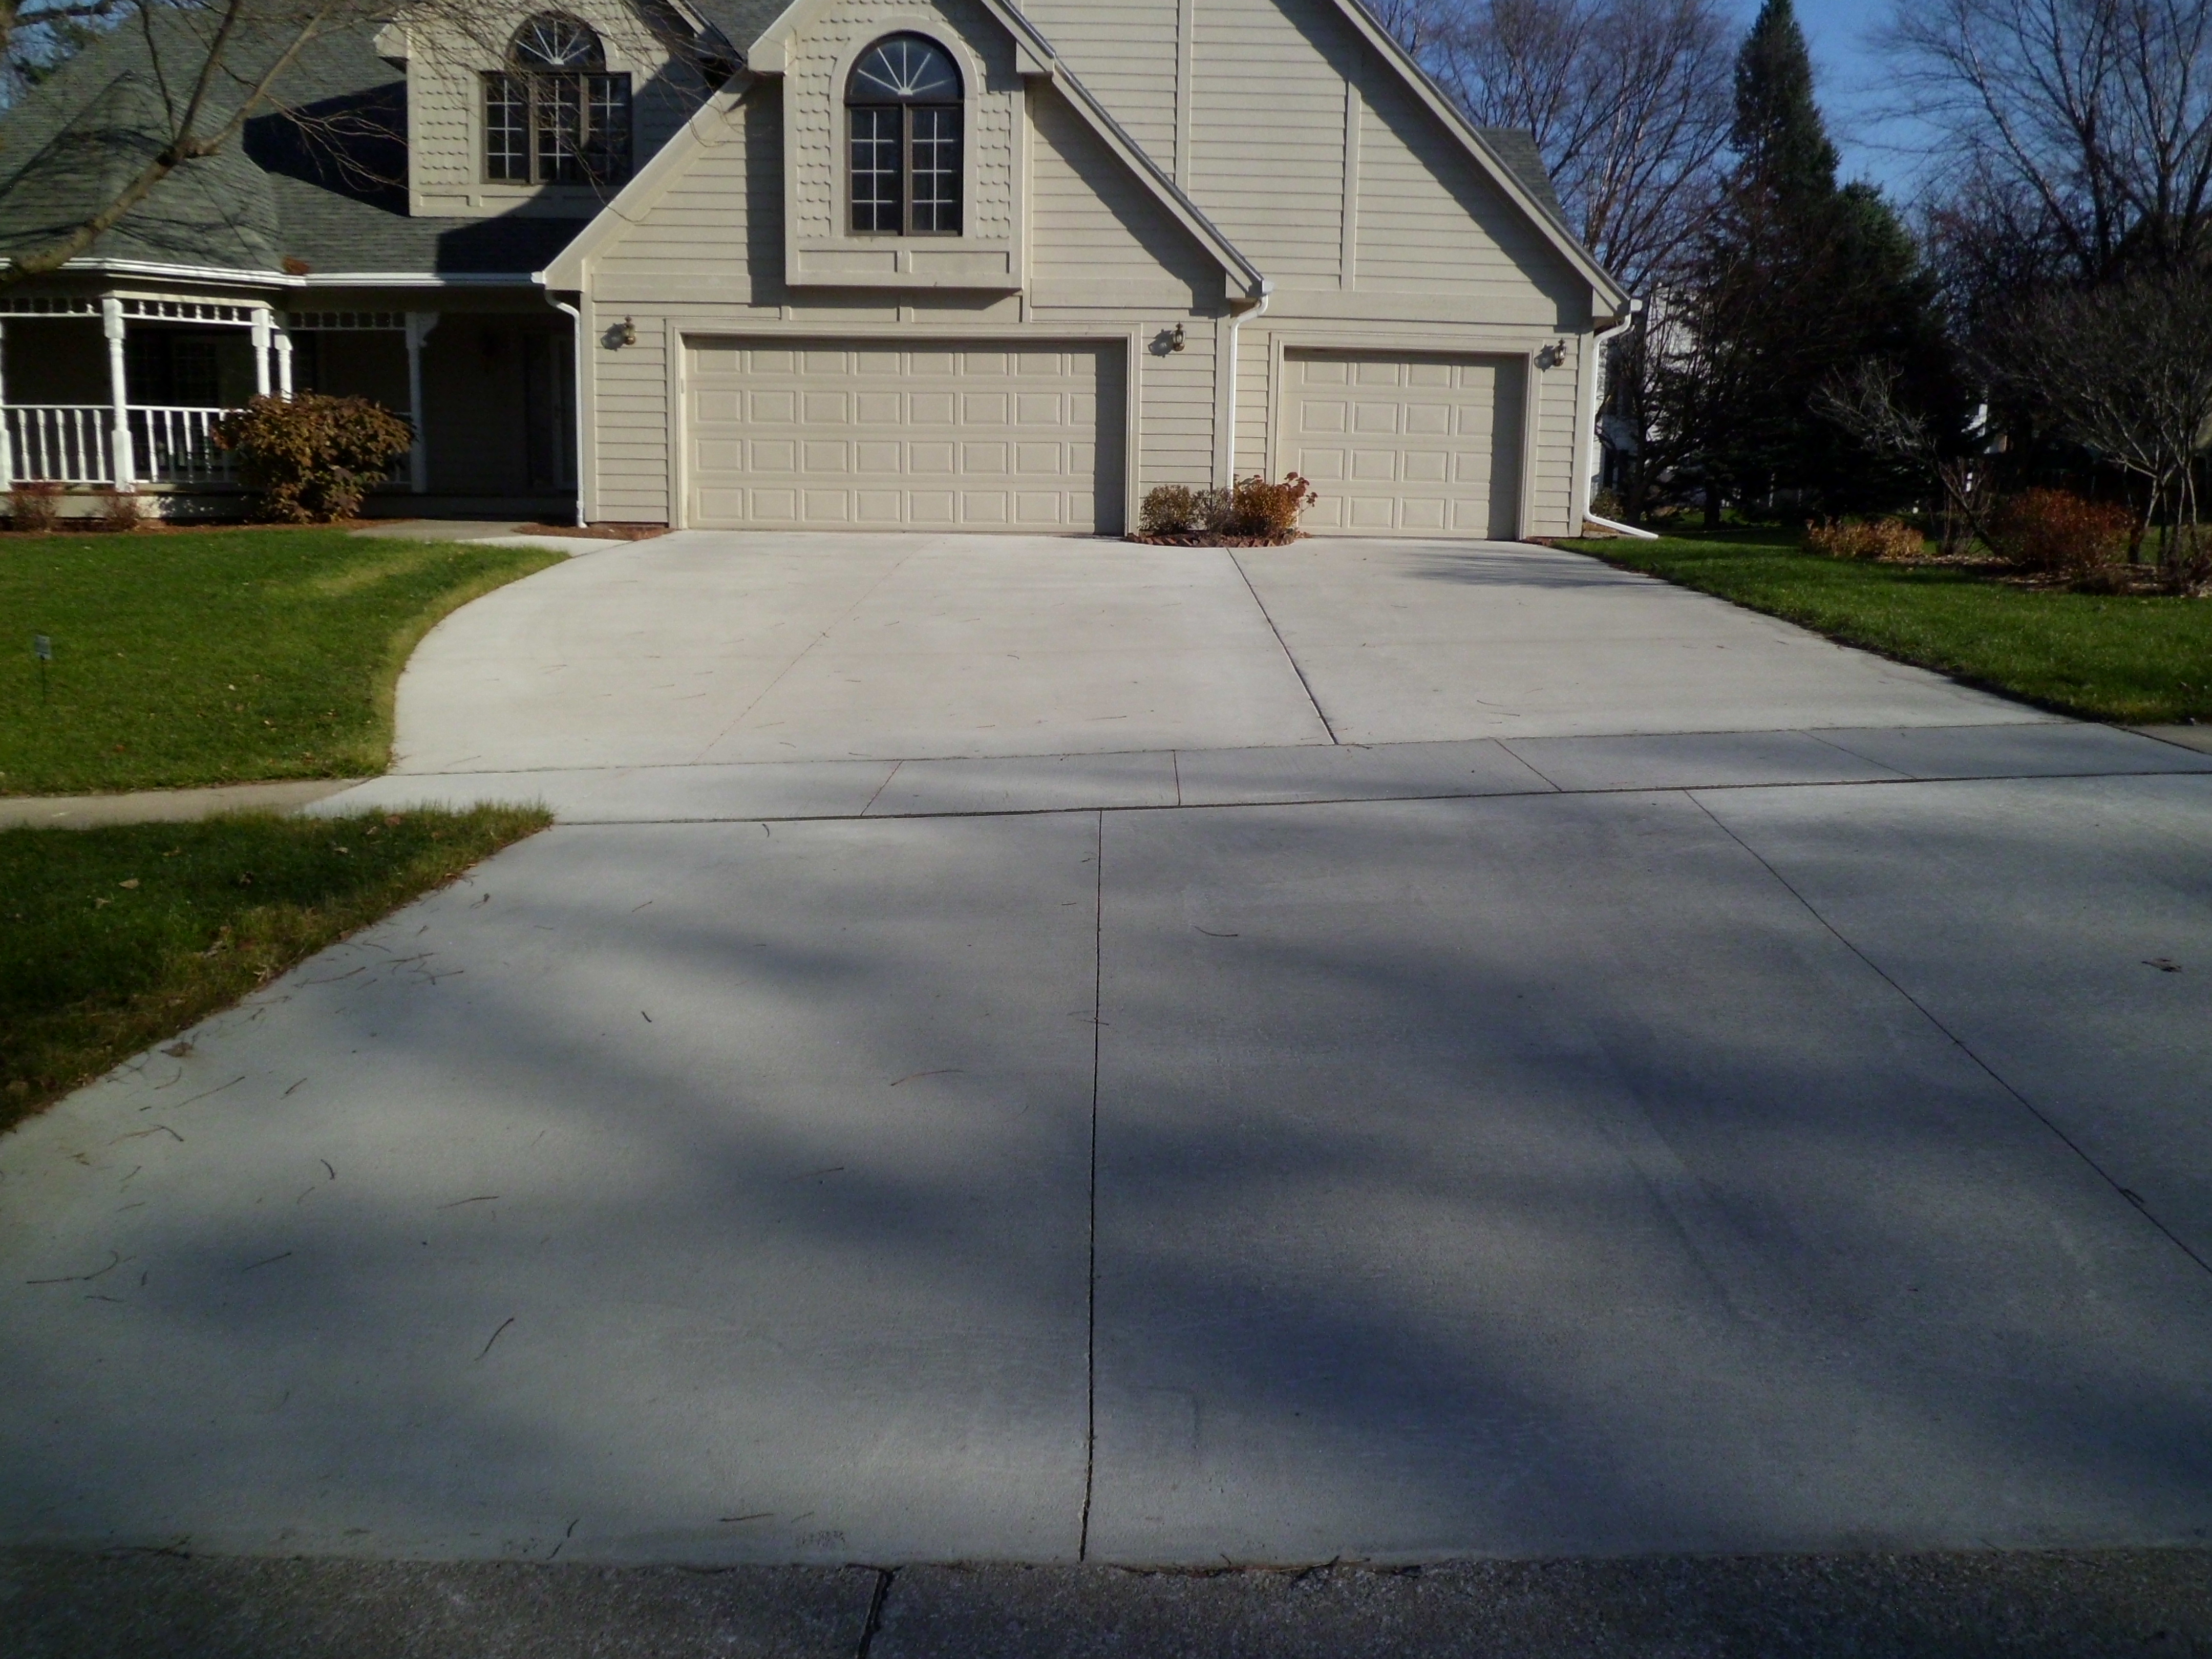 Driveway picture after work is completed at Don Schoen's